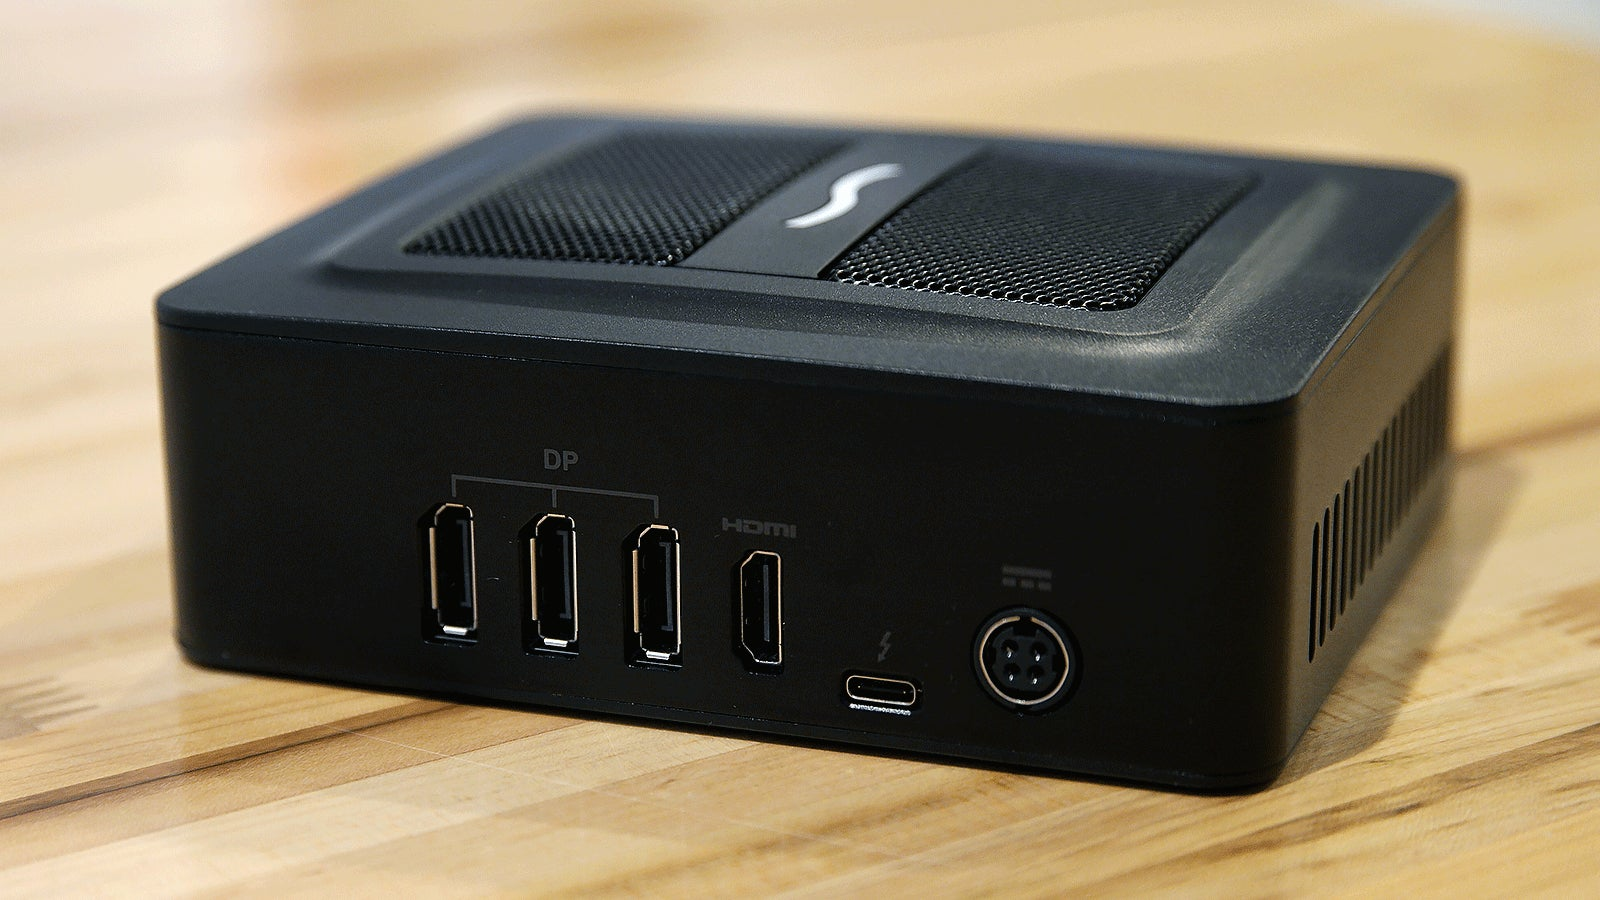 This Little Box Can Make Even The Junkiest Laptop A Gaming